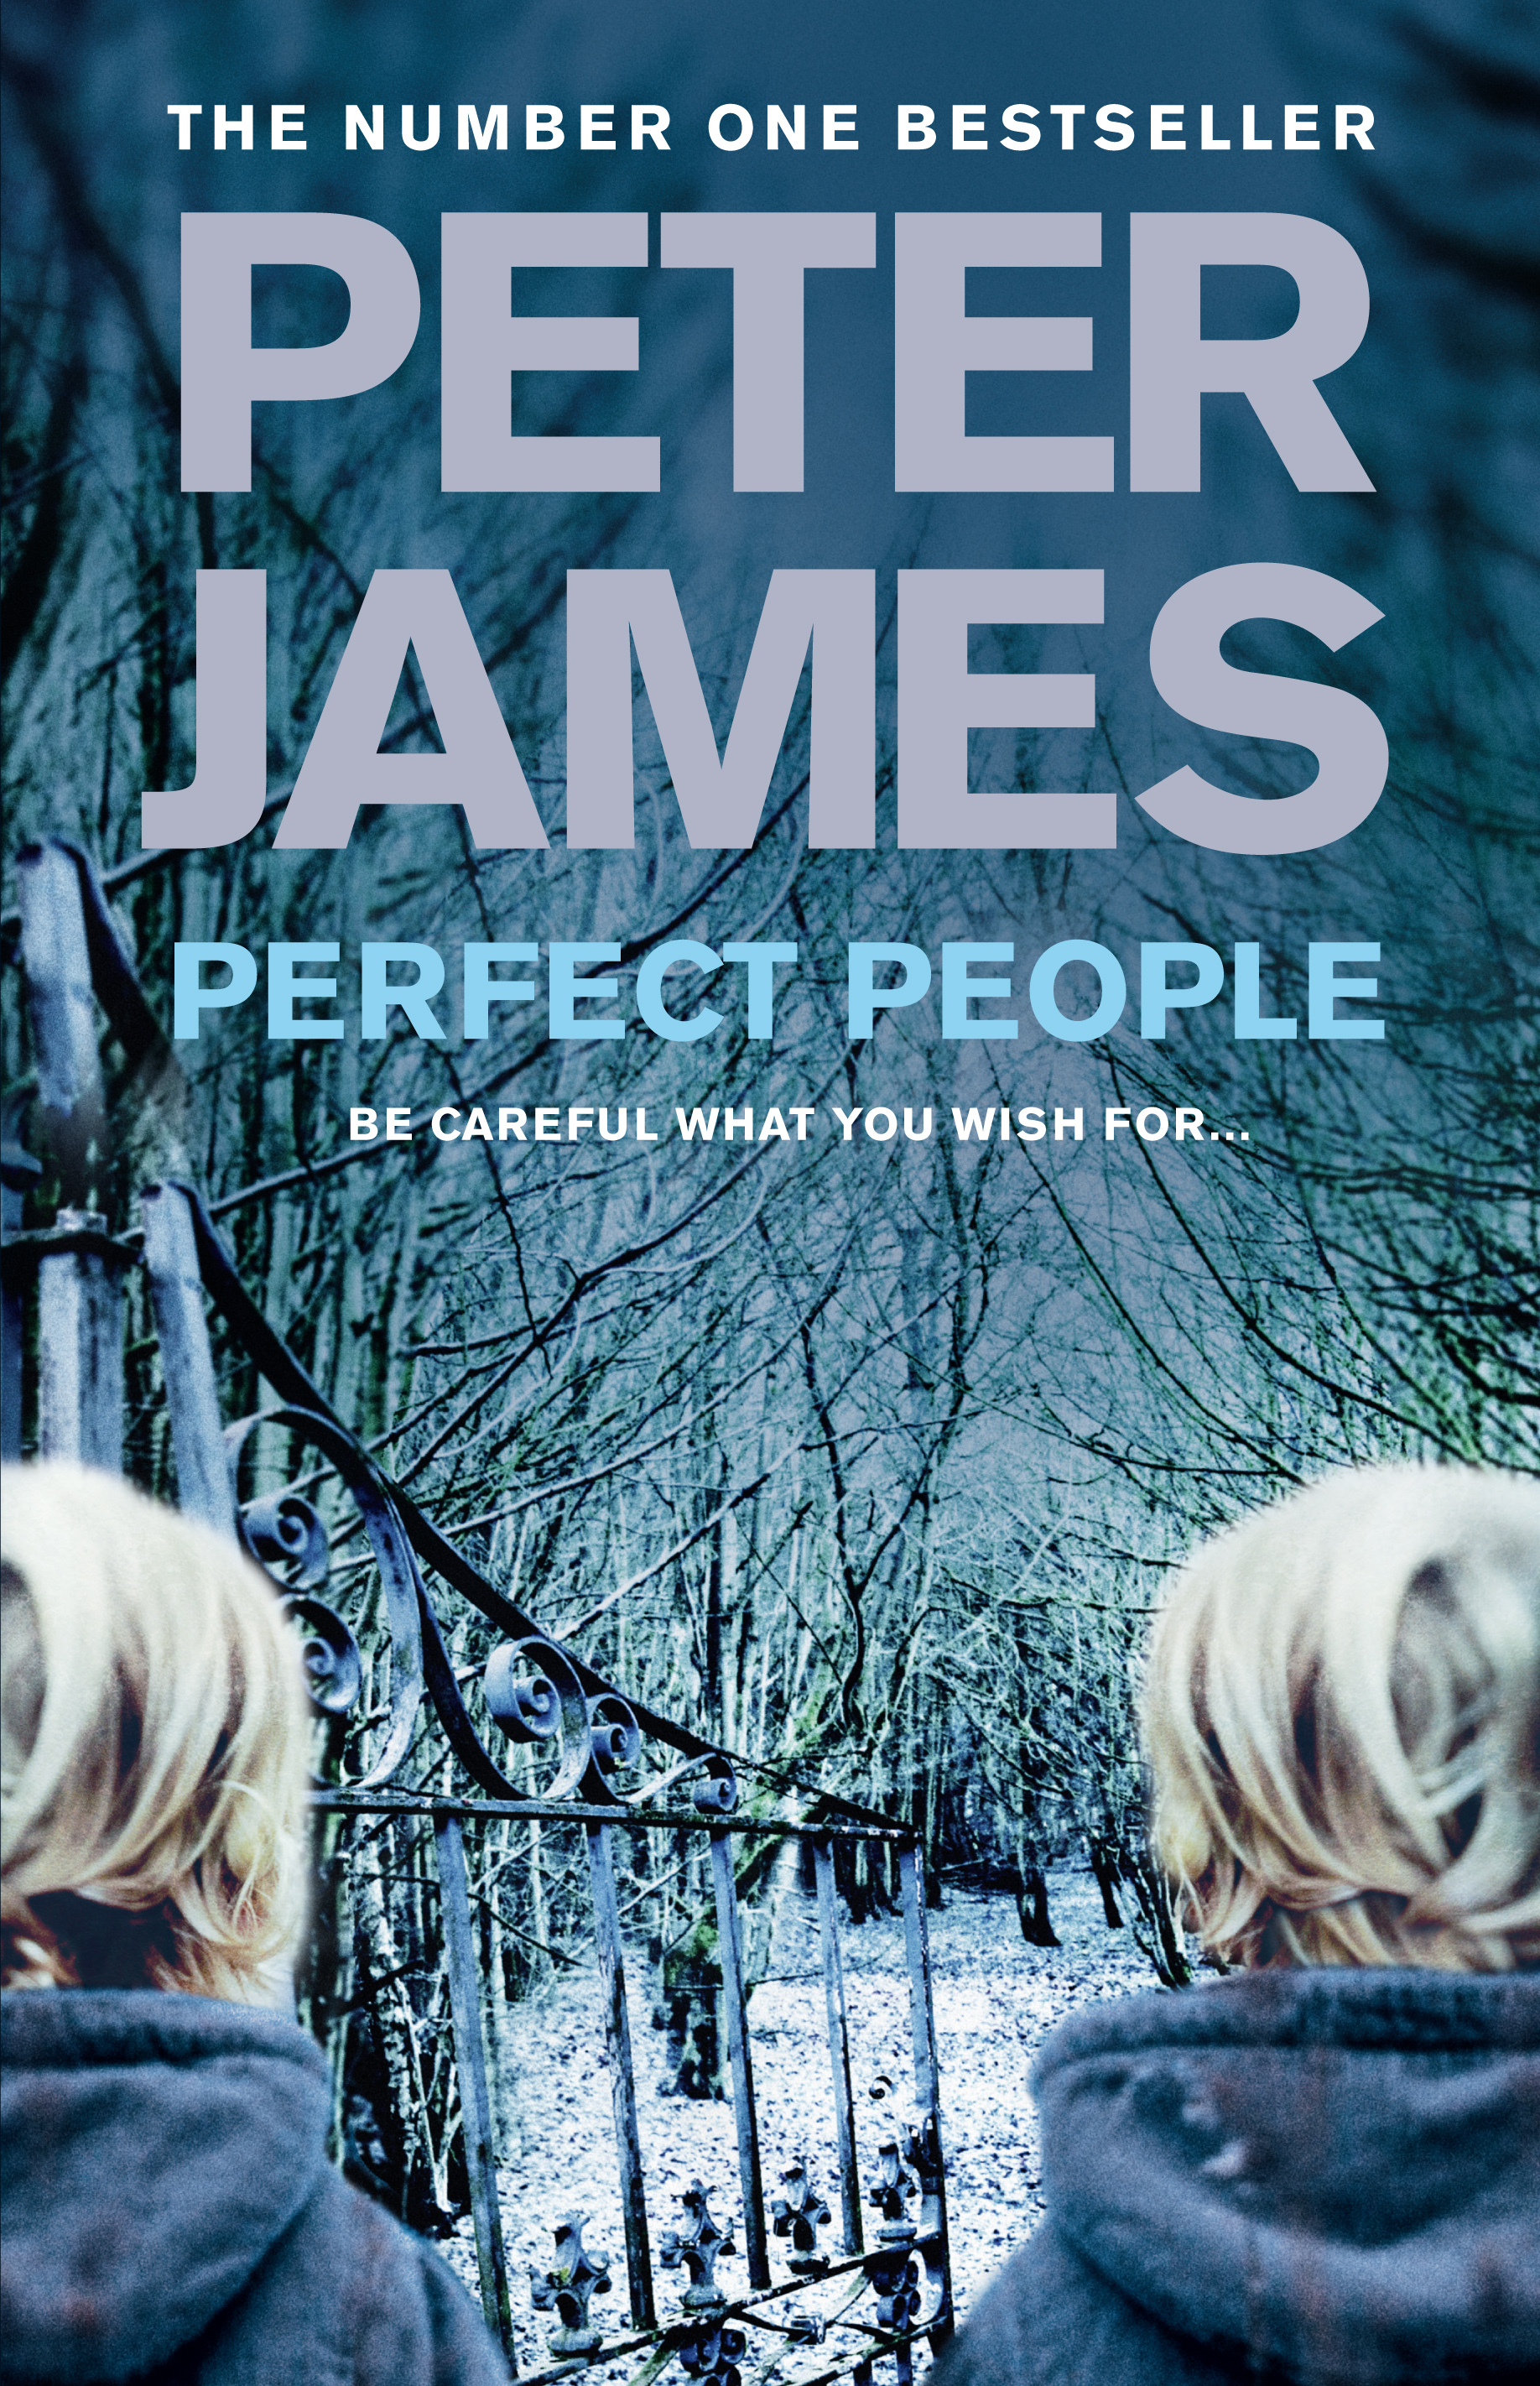 JAMES - PERFECT PEOPLE Macmillan cover.jpg